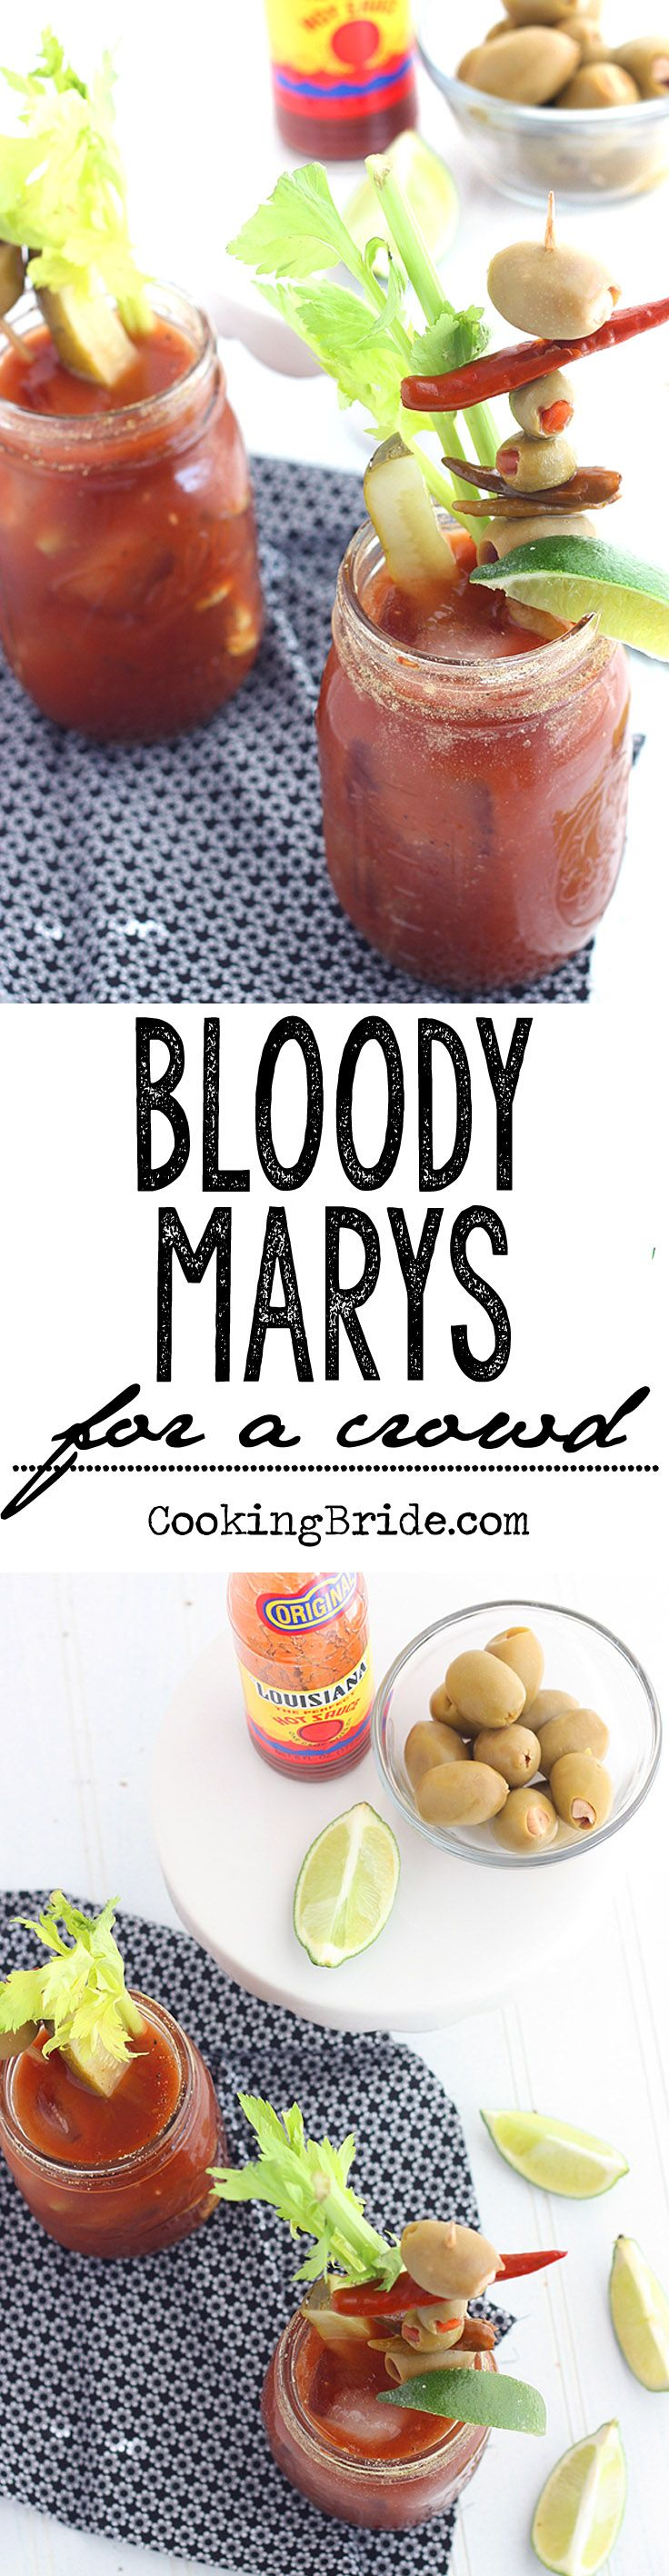 Easy-to-follow recipe for preparing a pitcher of Bloody Mary mix for a crowd.